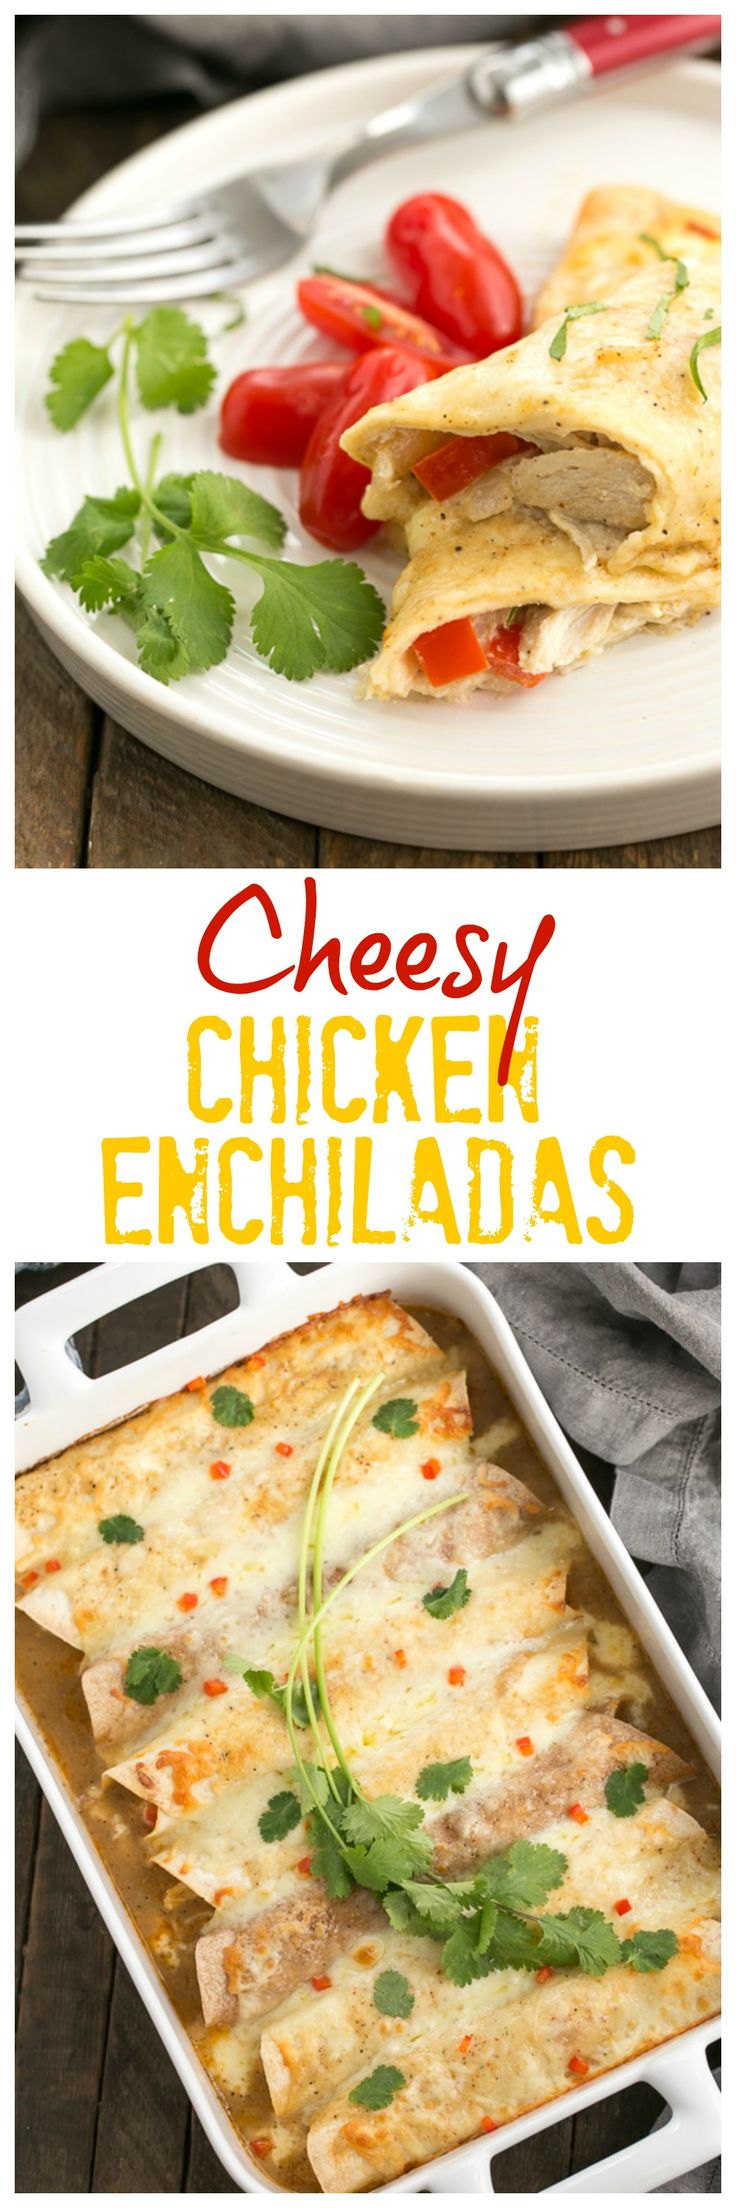 Cheesy Chicken Enchiladas | Irresistible, Cheesy Chicken Enchiladas from scratch! @lizzydo